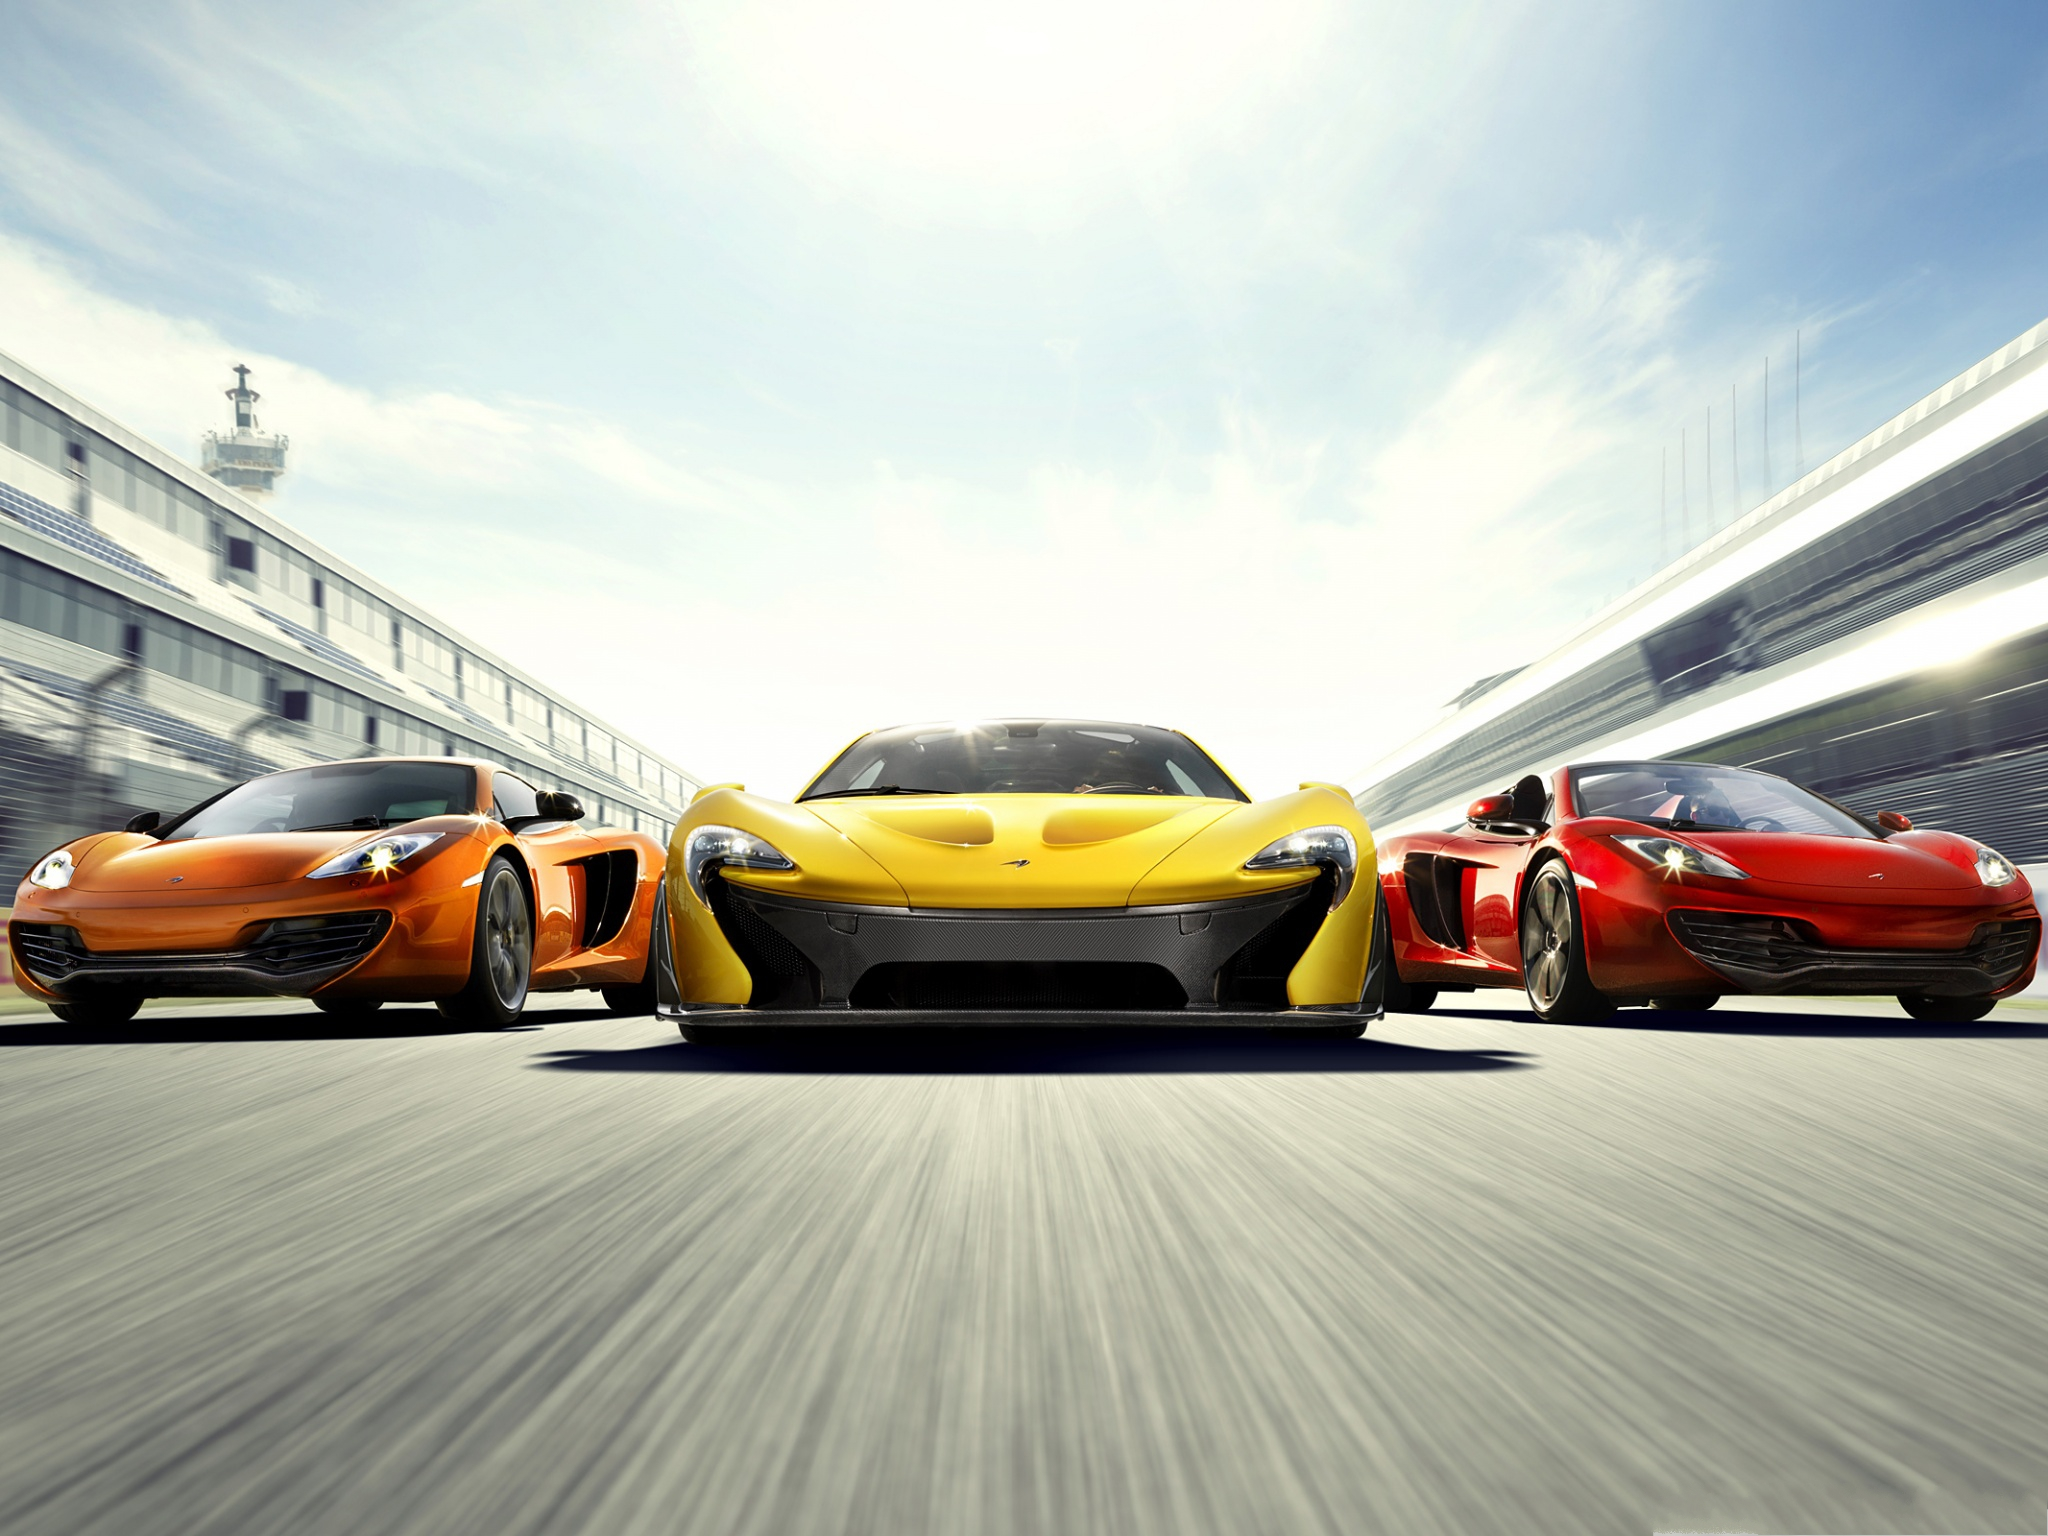 click to free download the wallpaper--McLaren Supercars Background, Three Cars in a Line, Great Speed, Be Careful! 2048X1536 free wallpaper download